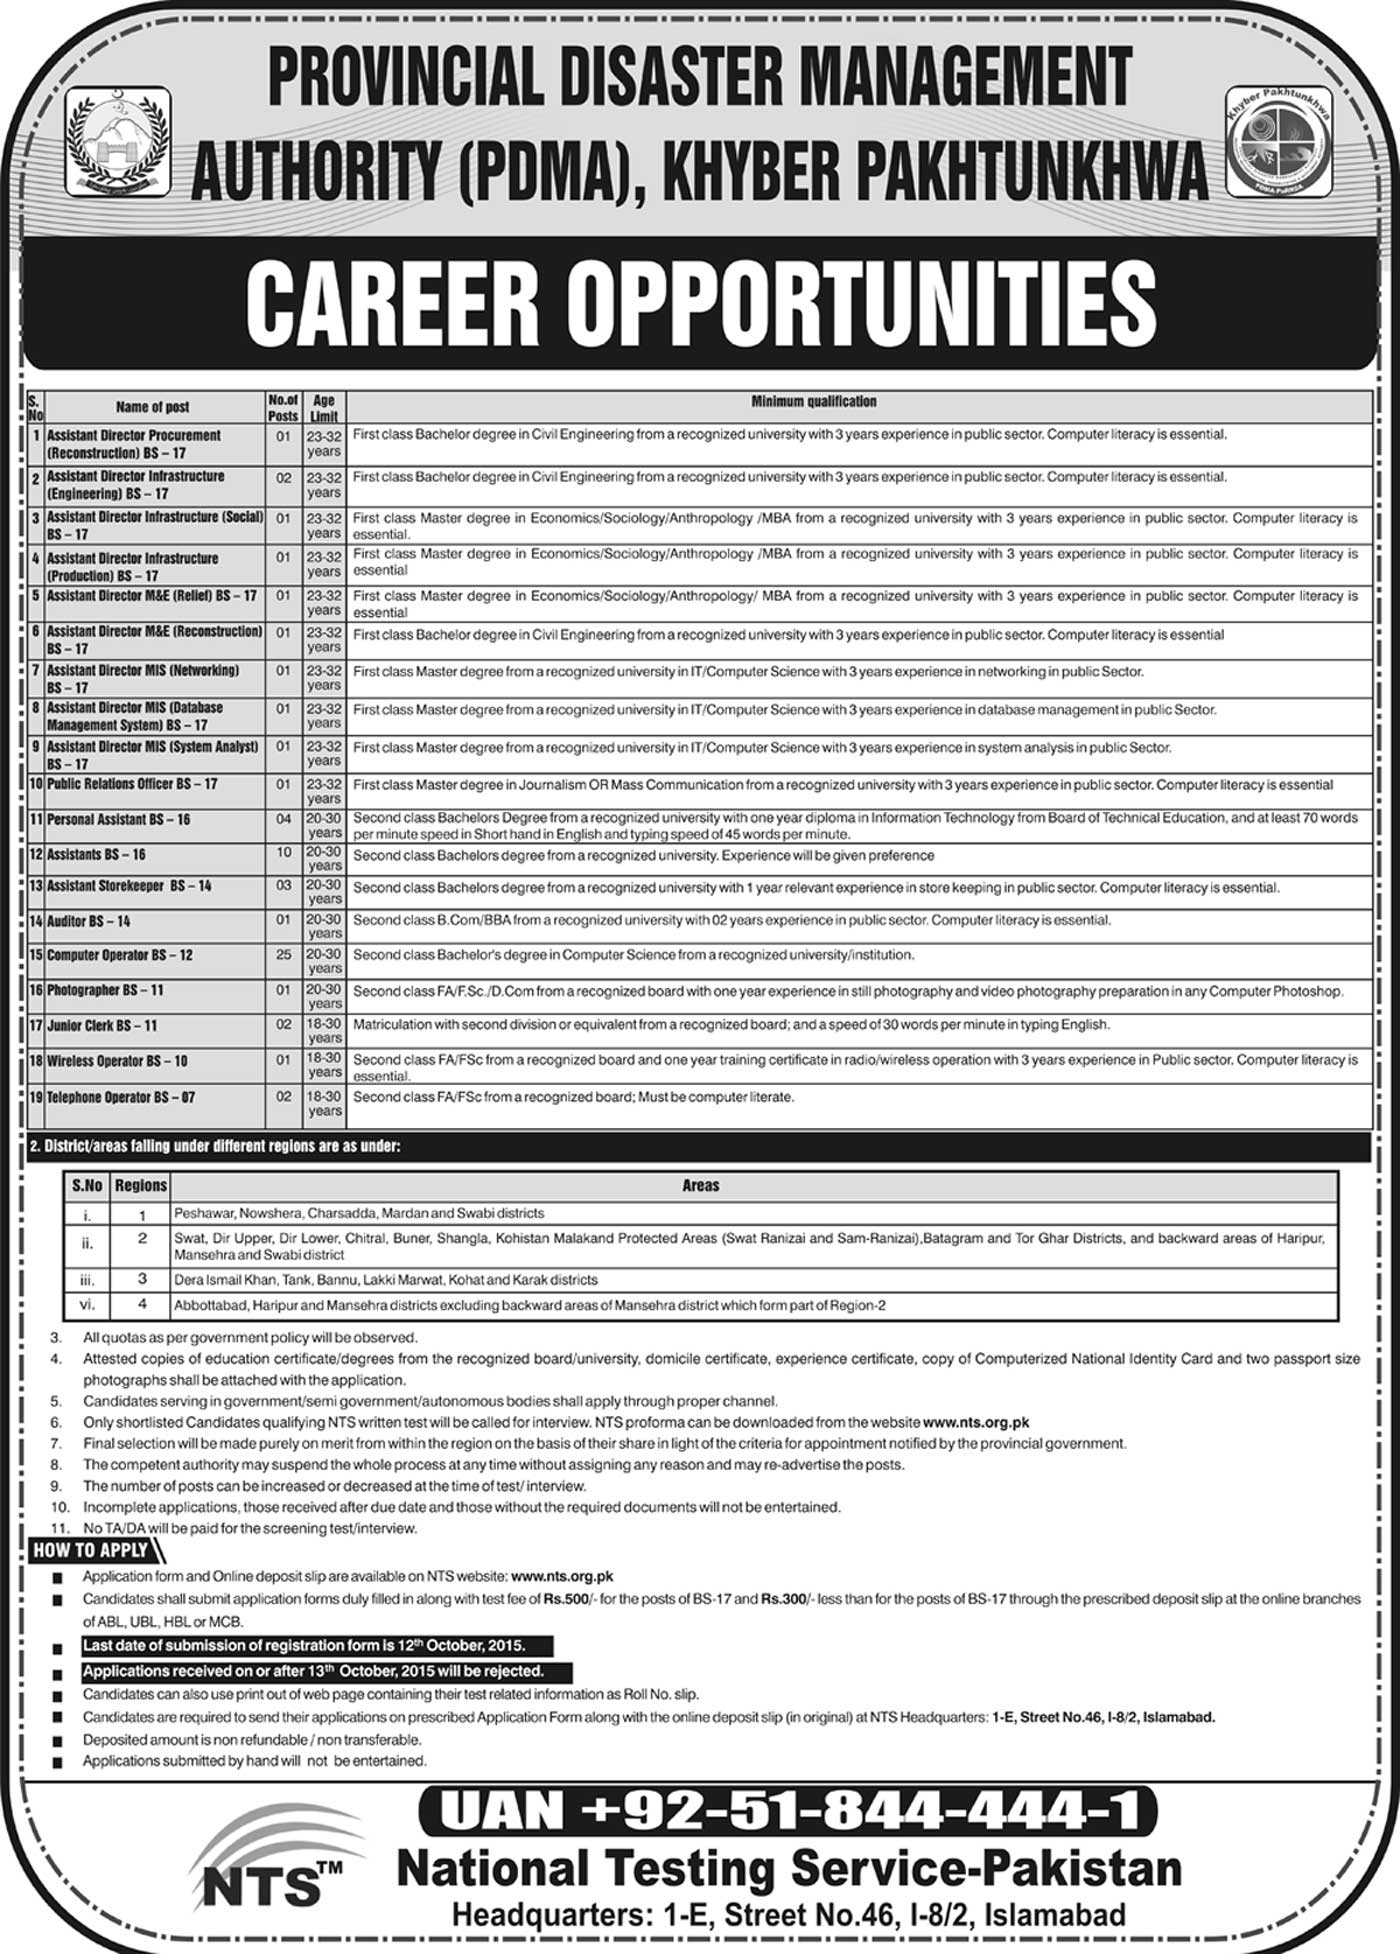 Provincial Disaster Management Authority Jobs 2016 PDMA KPK NTS Form, Last Date